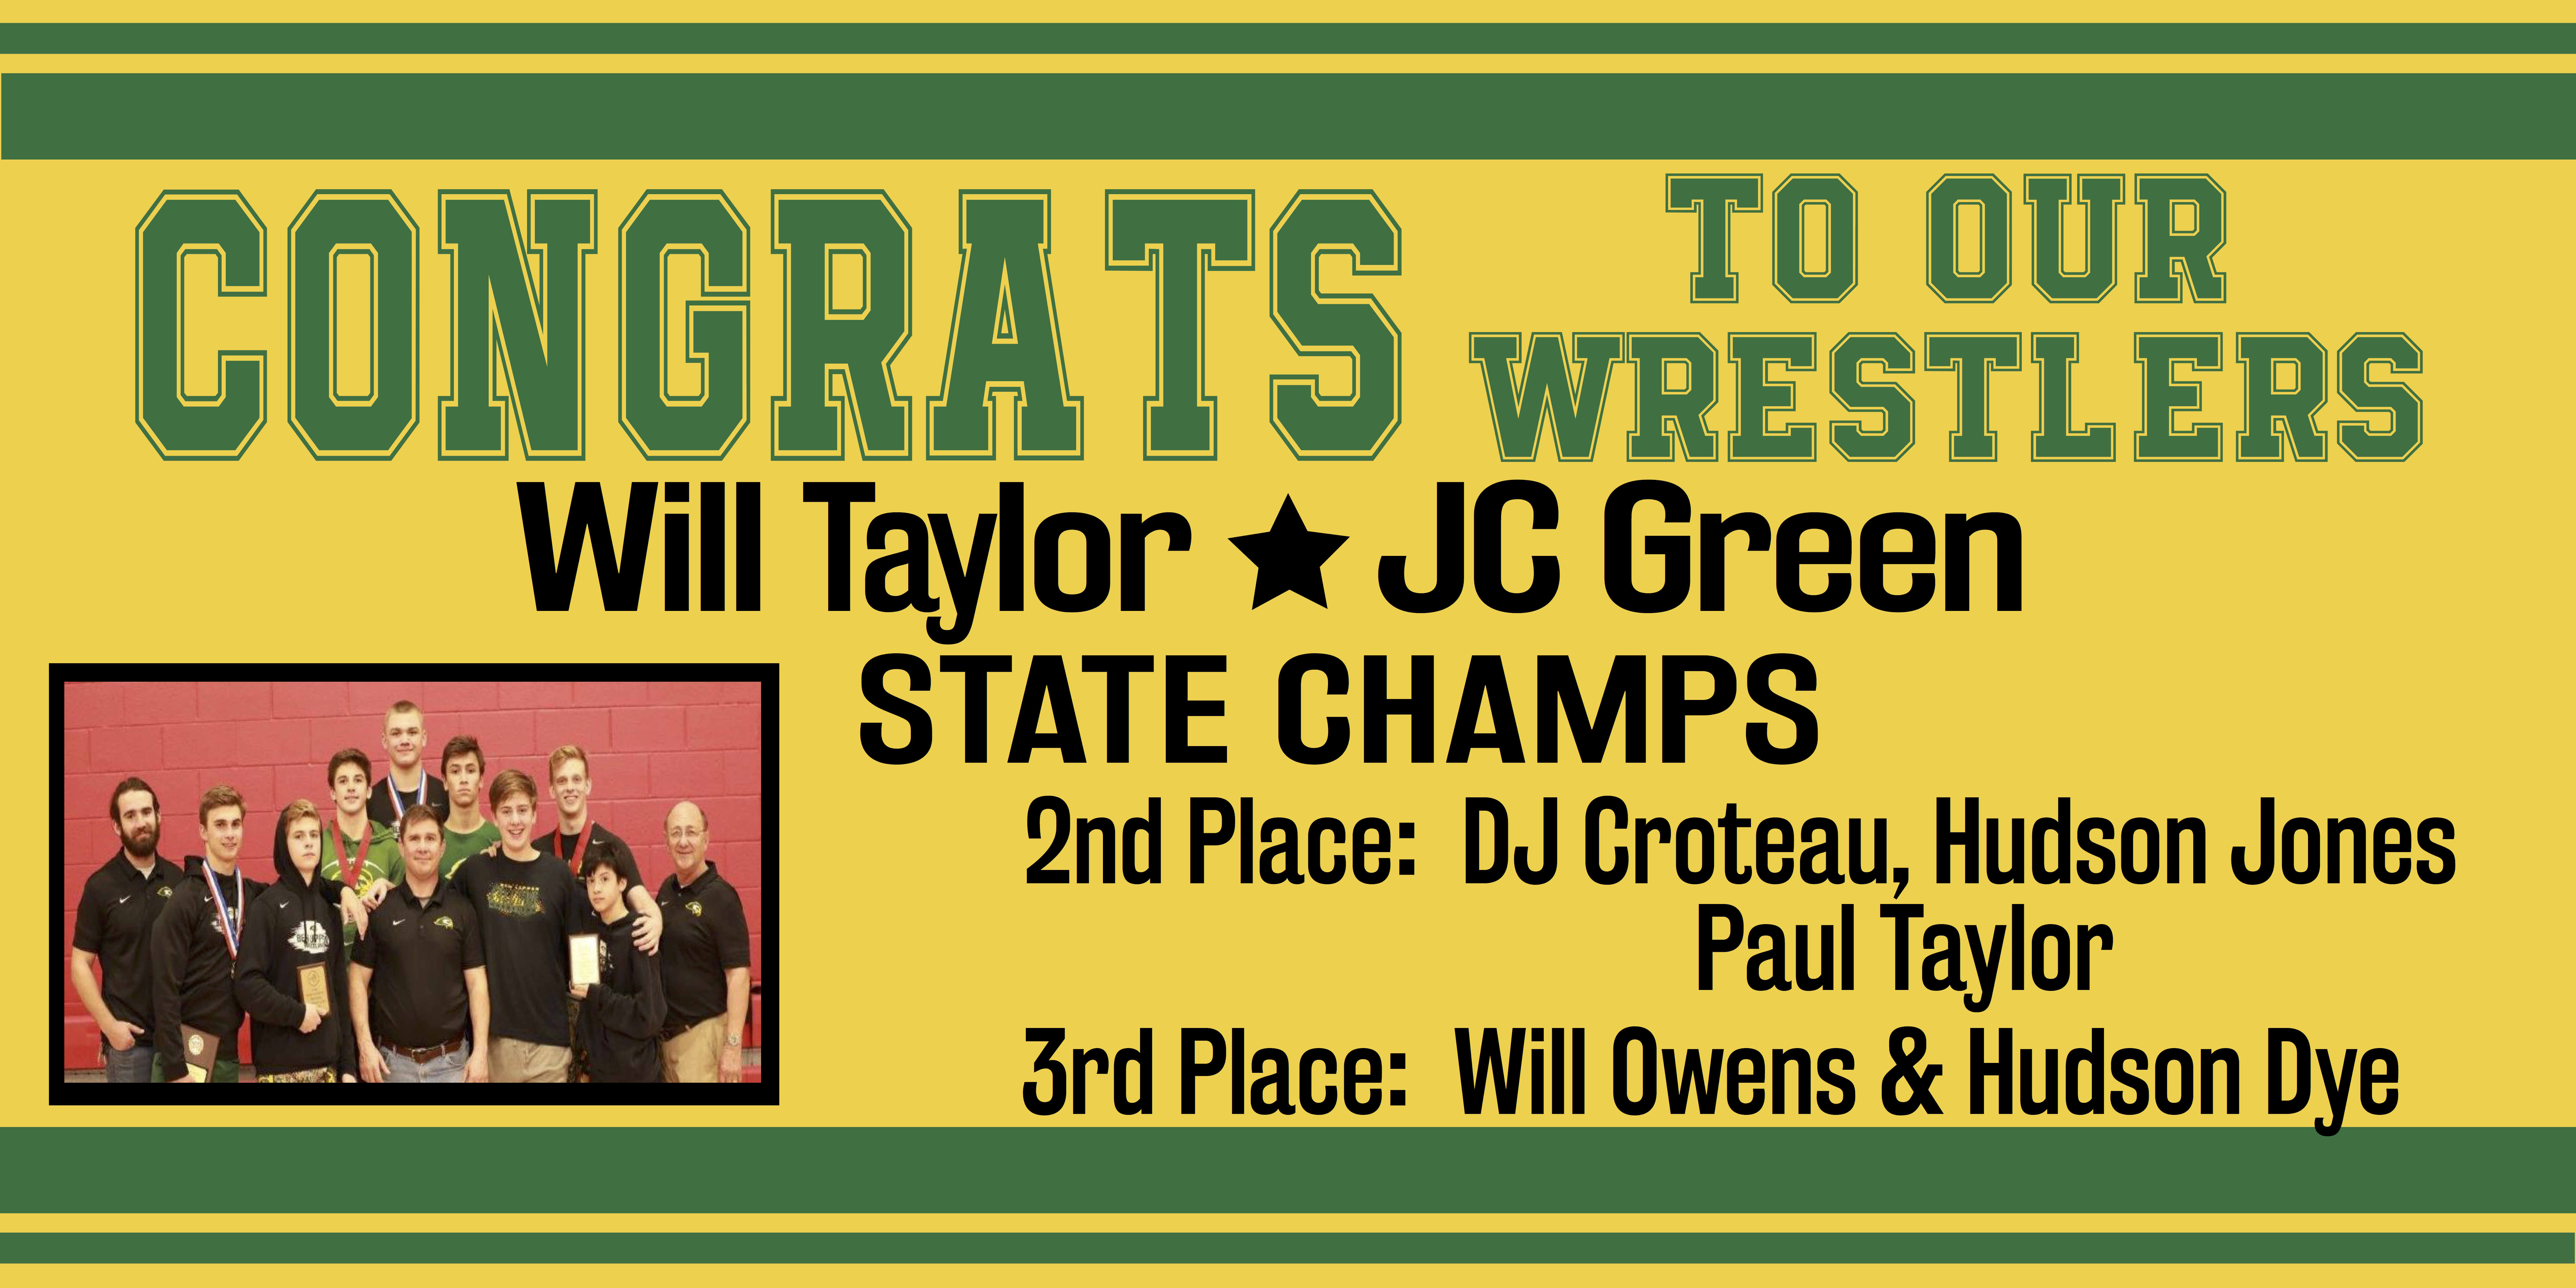 Falcons Will Taylor and JC Green Win Wrestling State Championships